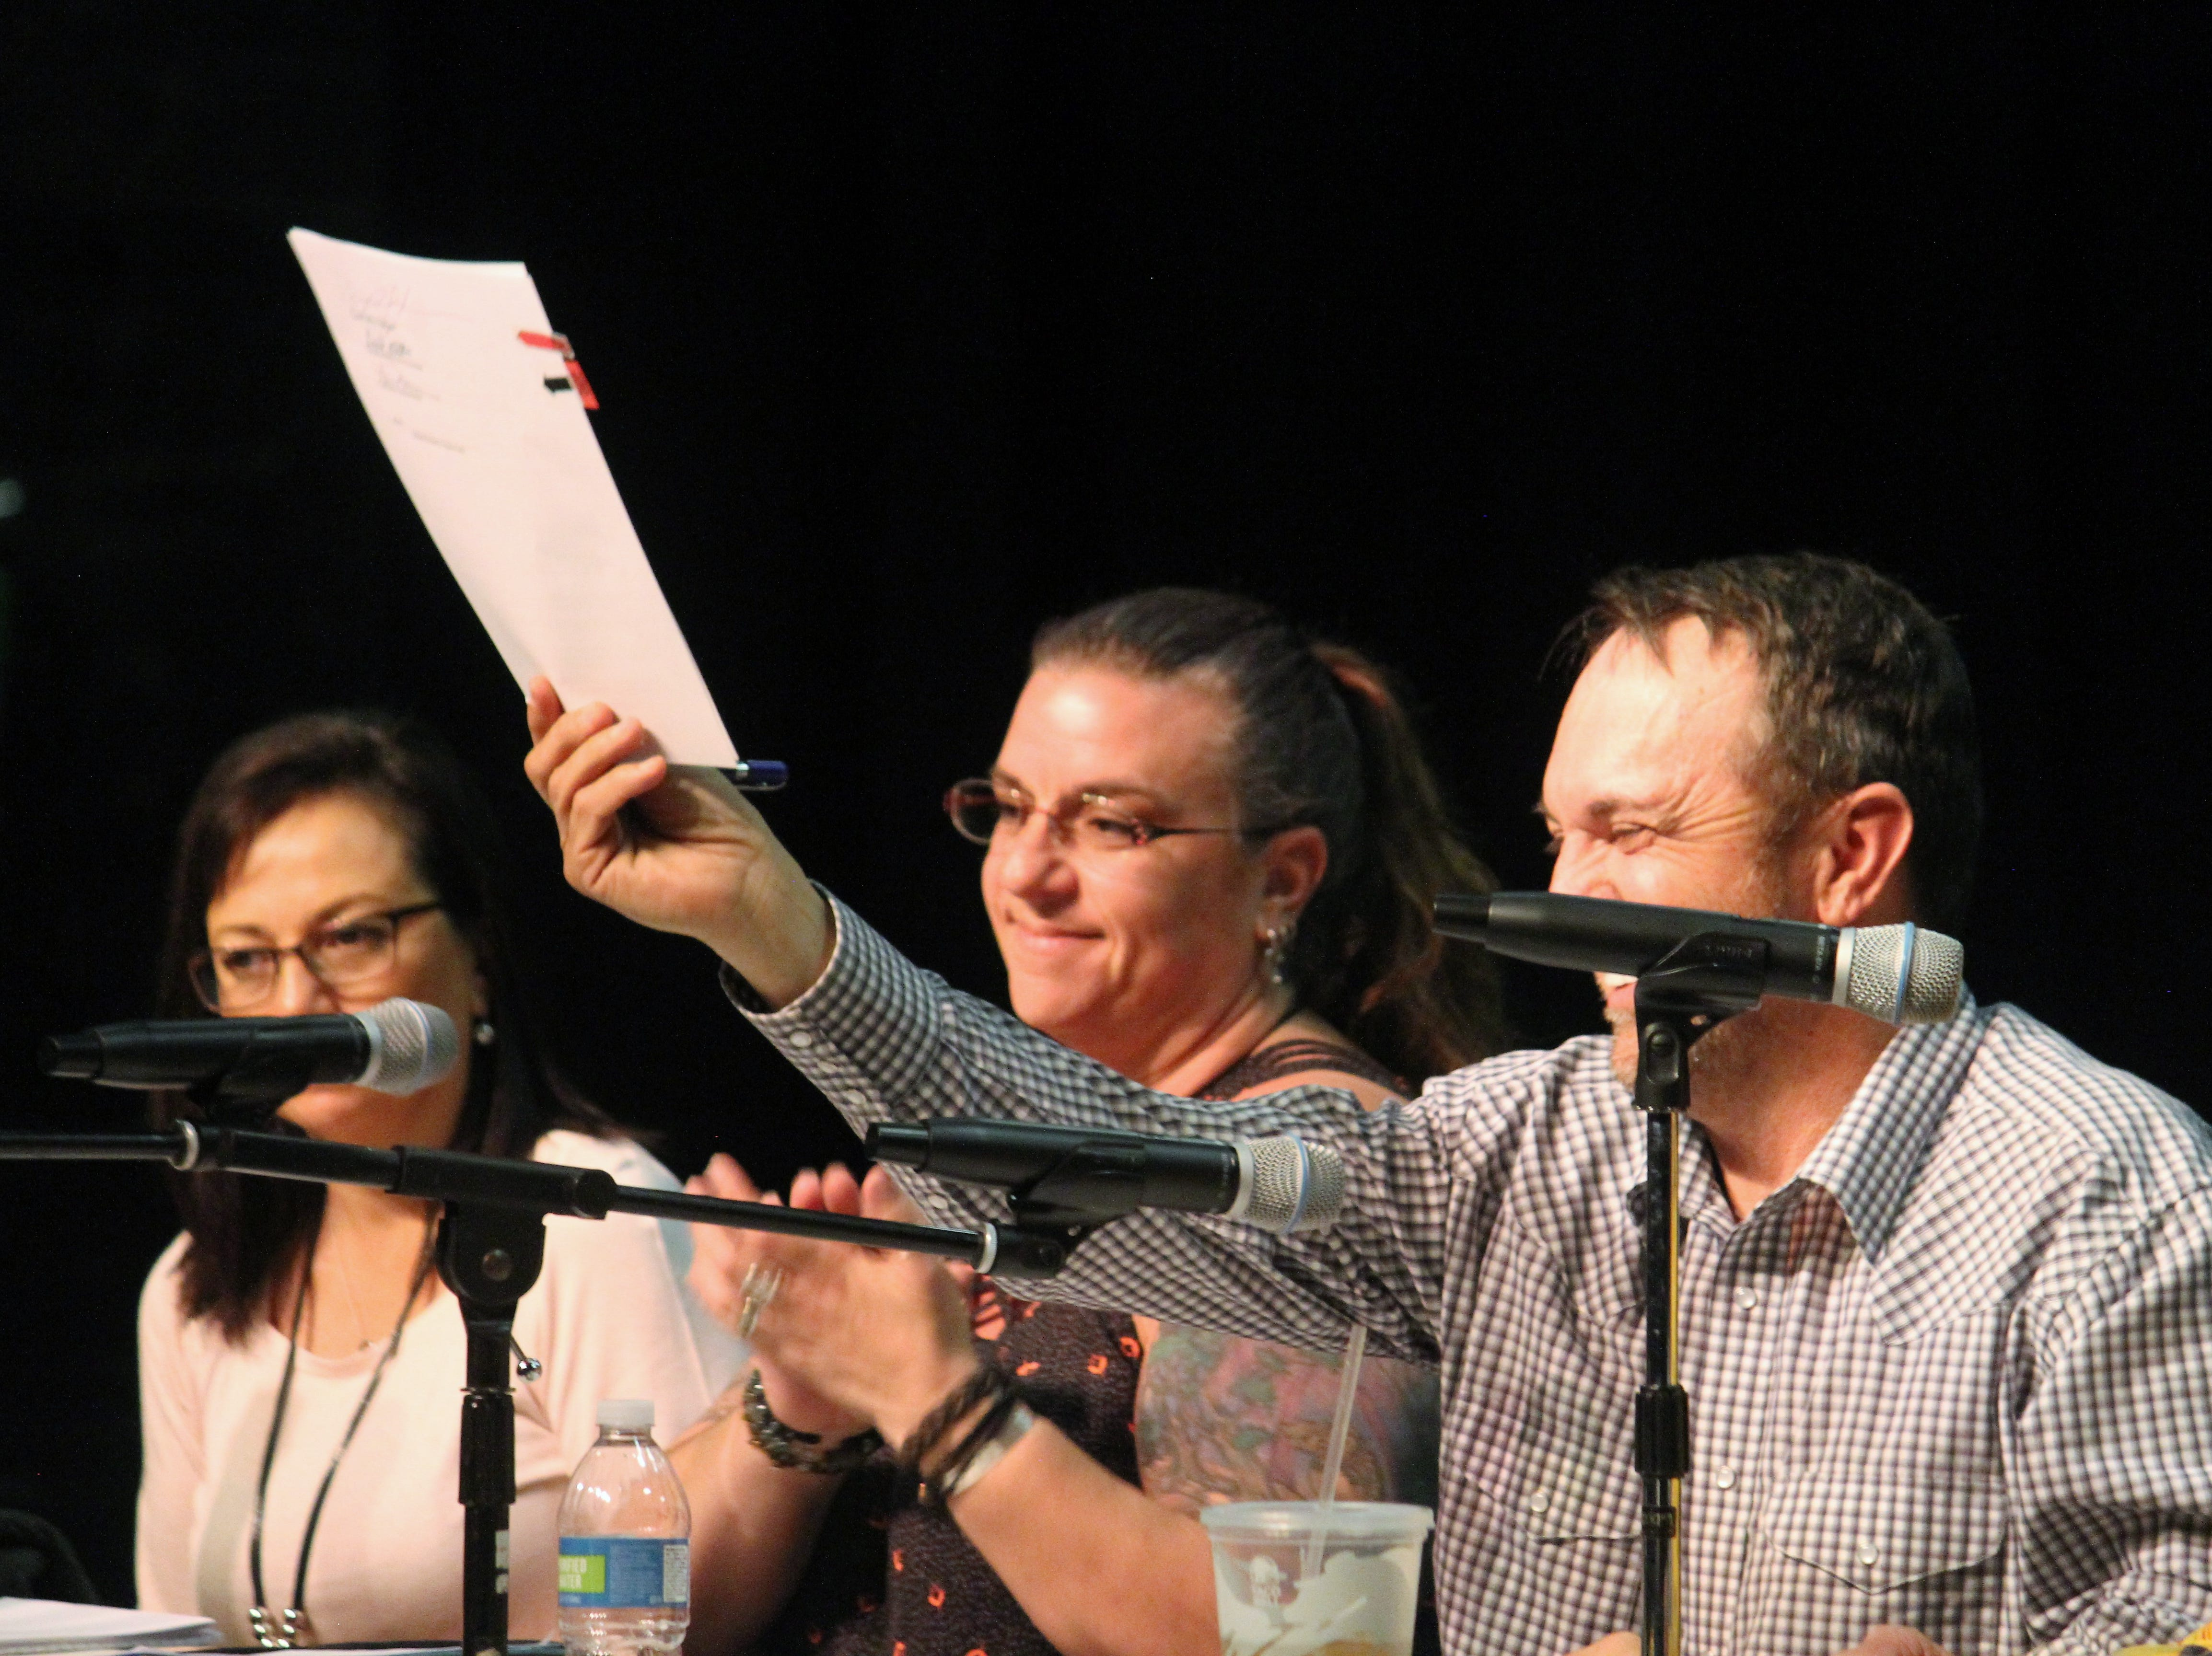 Couy Griffin hold up the resolution declaring Otero County a Second Amendment Sanctuary County at a special meeting Monday evening at the Flickinger Center for the Performing Arts.